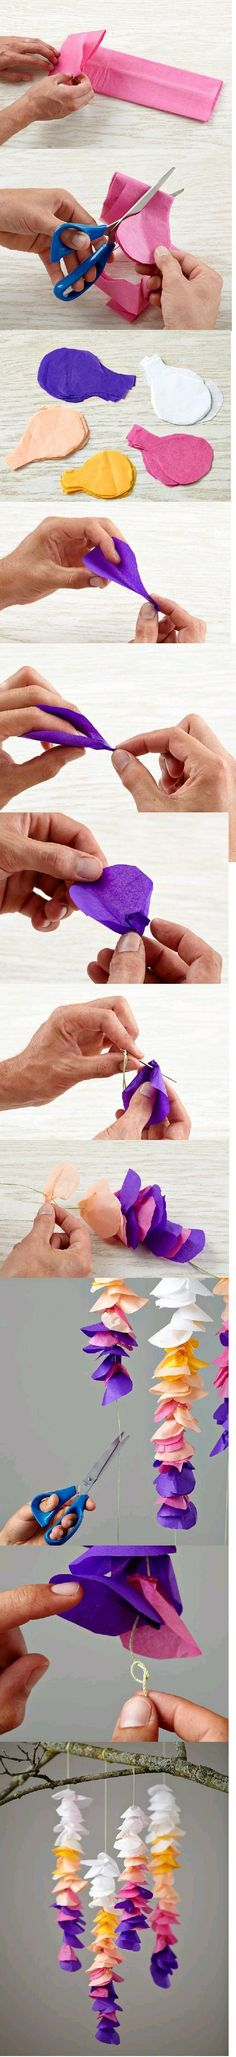 Maria C Sandoval A. – Origami Community : Explore the best and the most trending origami Ideas and easy origami Tutorial Handmade Flowers, Diy Flowers, Fabric Flowers, Diy Paper, Paper Art, Paper Crafts, Tissue Paper Flowers, Crepe Paper, Flower Tutorial